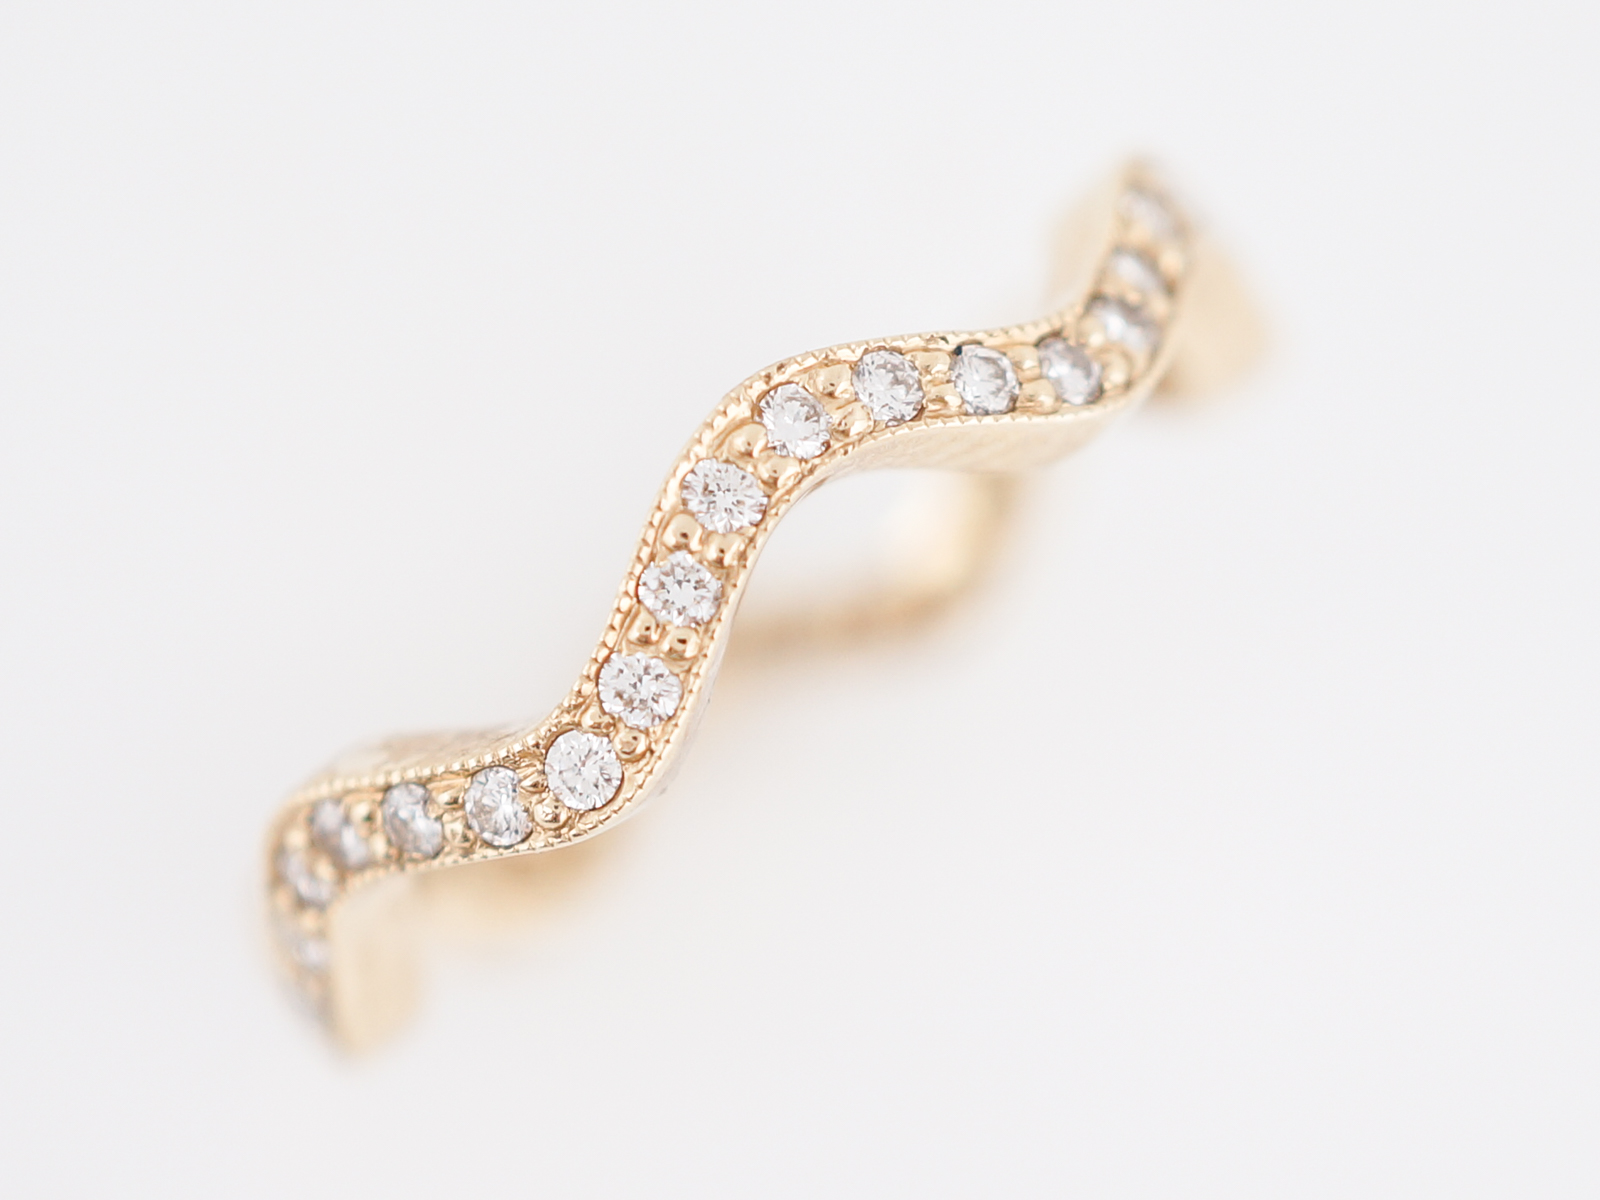 Wedding Band Modern .63 Round Brilliant Cut Diamonds in 14k Yellow Gold-2